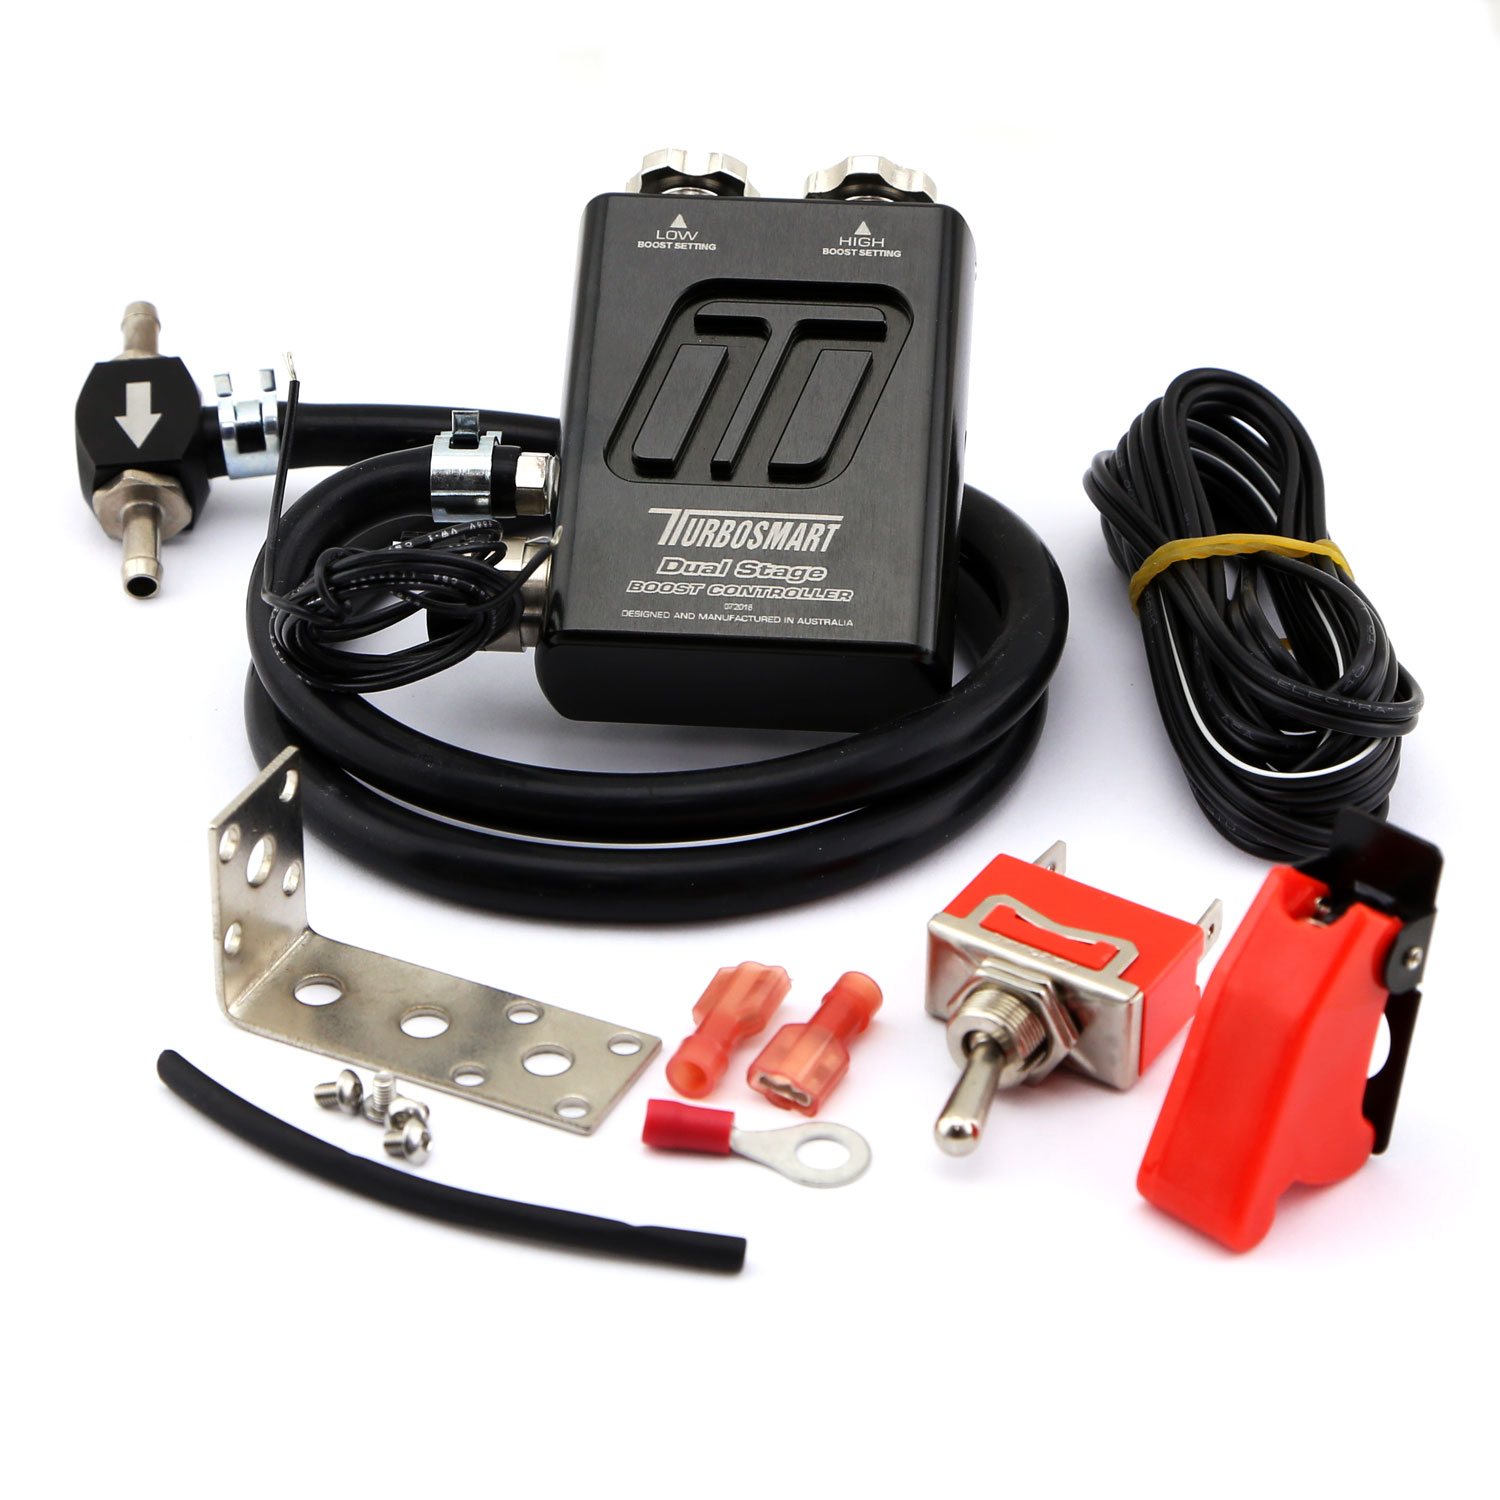 Black TurboSmart GCBV Dual Stage Manual Turbo Boost Controller TS-0105-1002